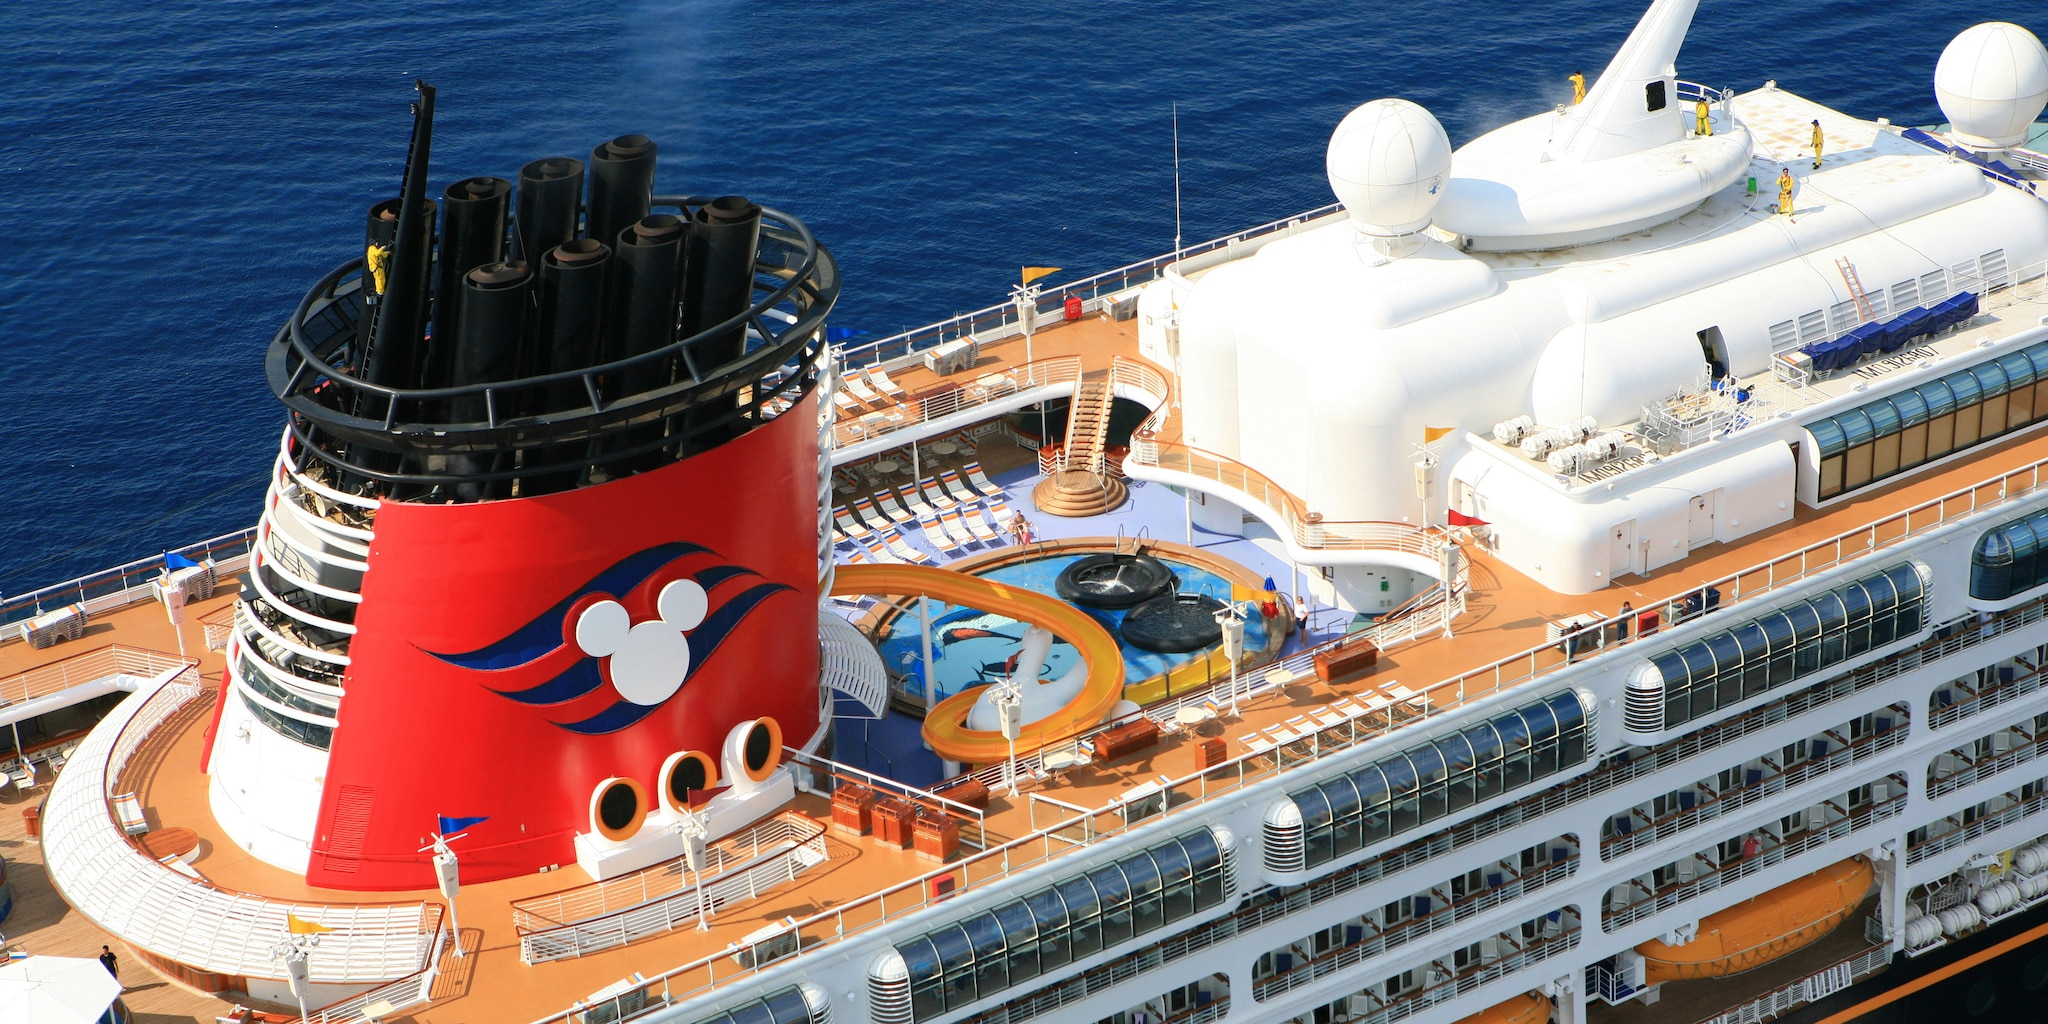 The pool and upper decks of the Disney Magic®